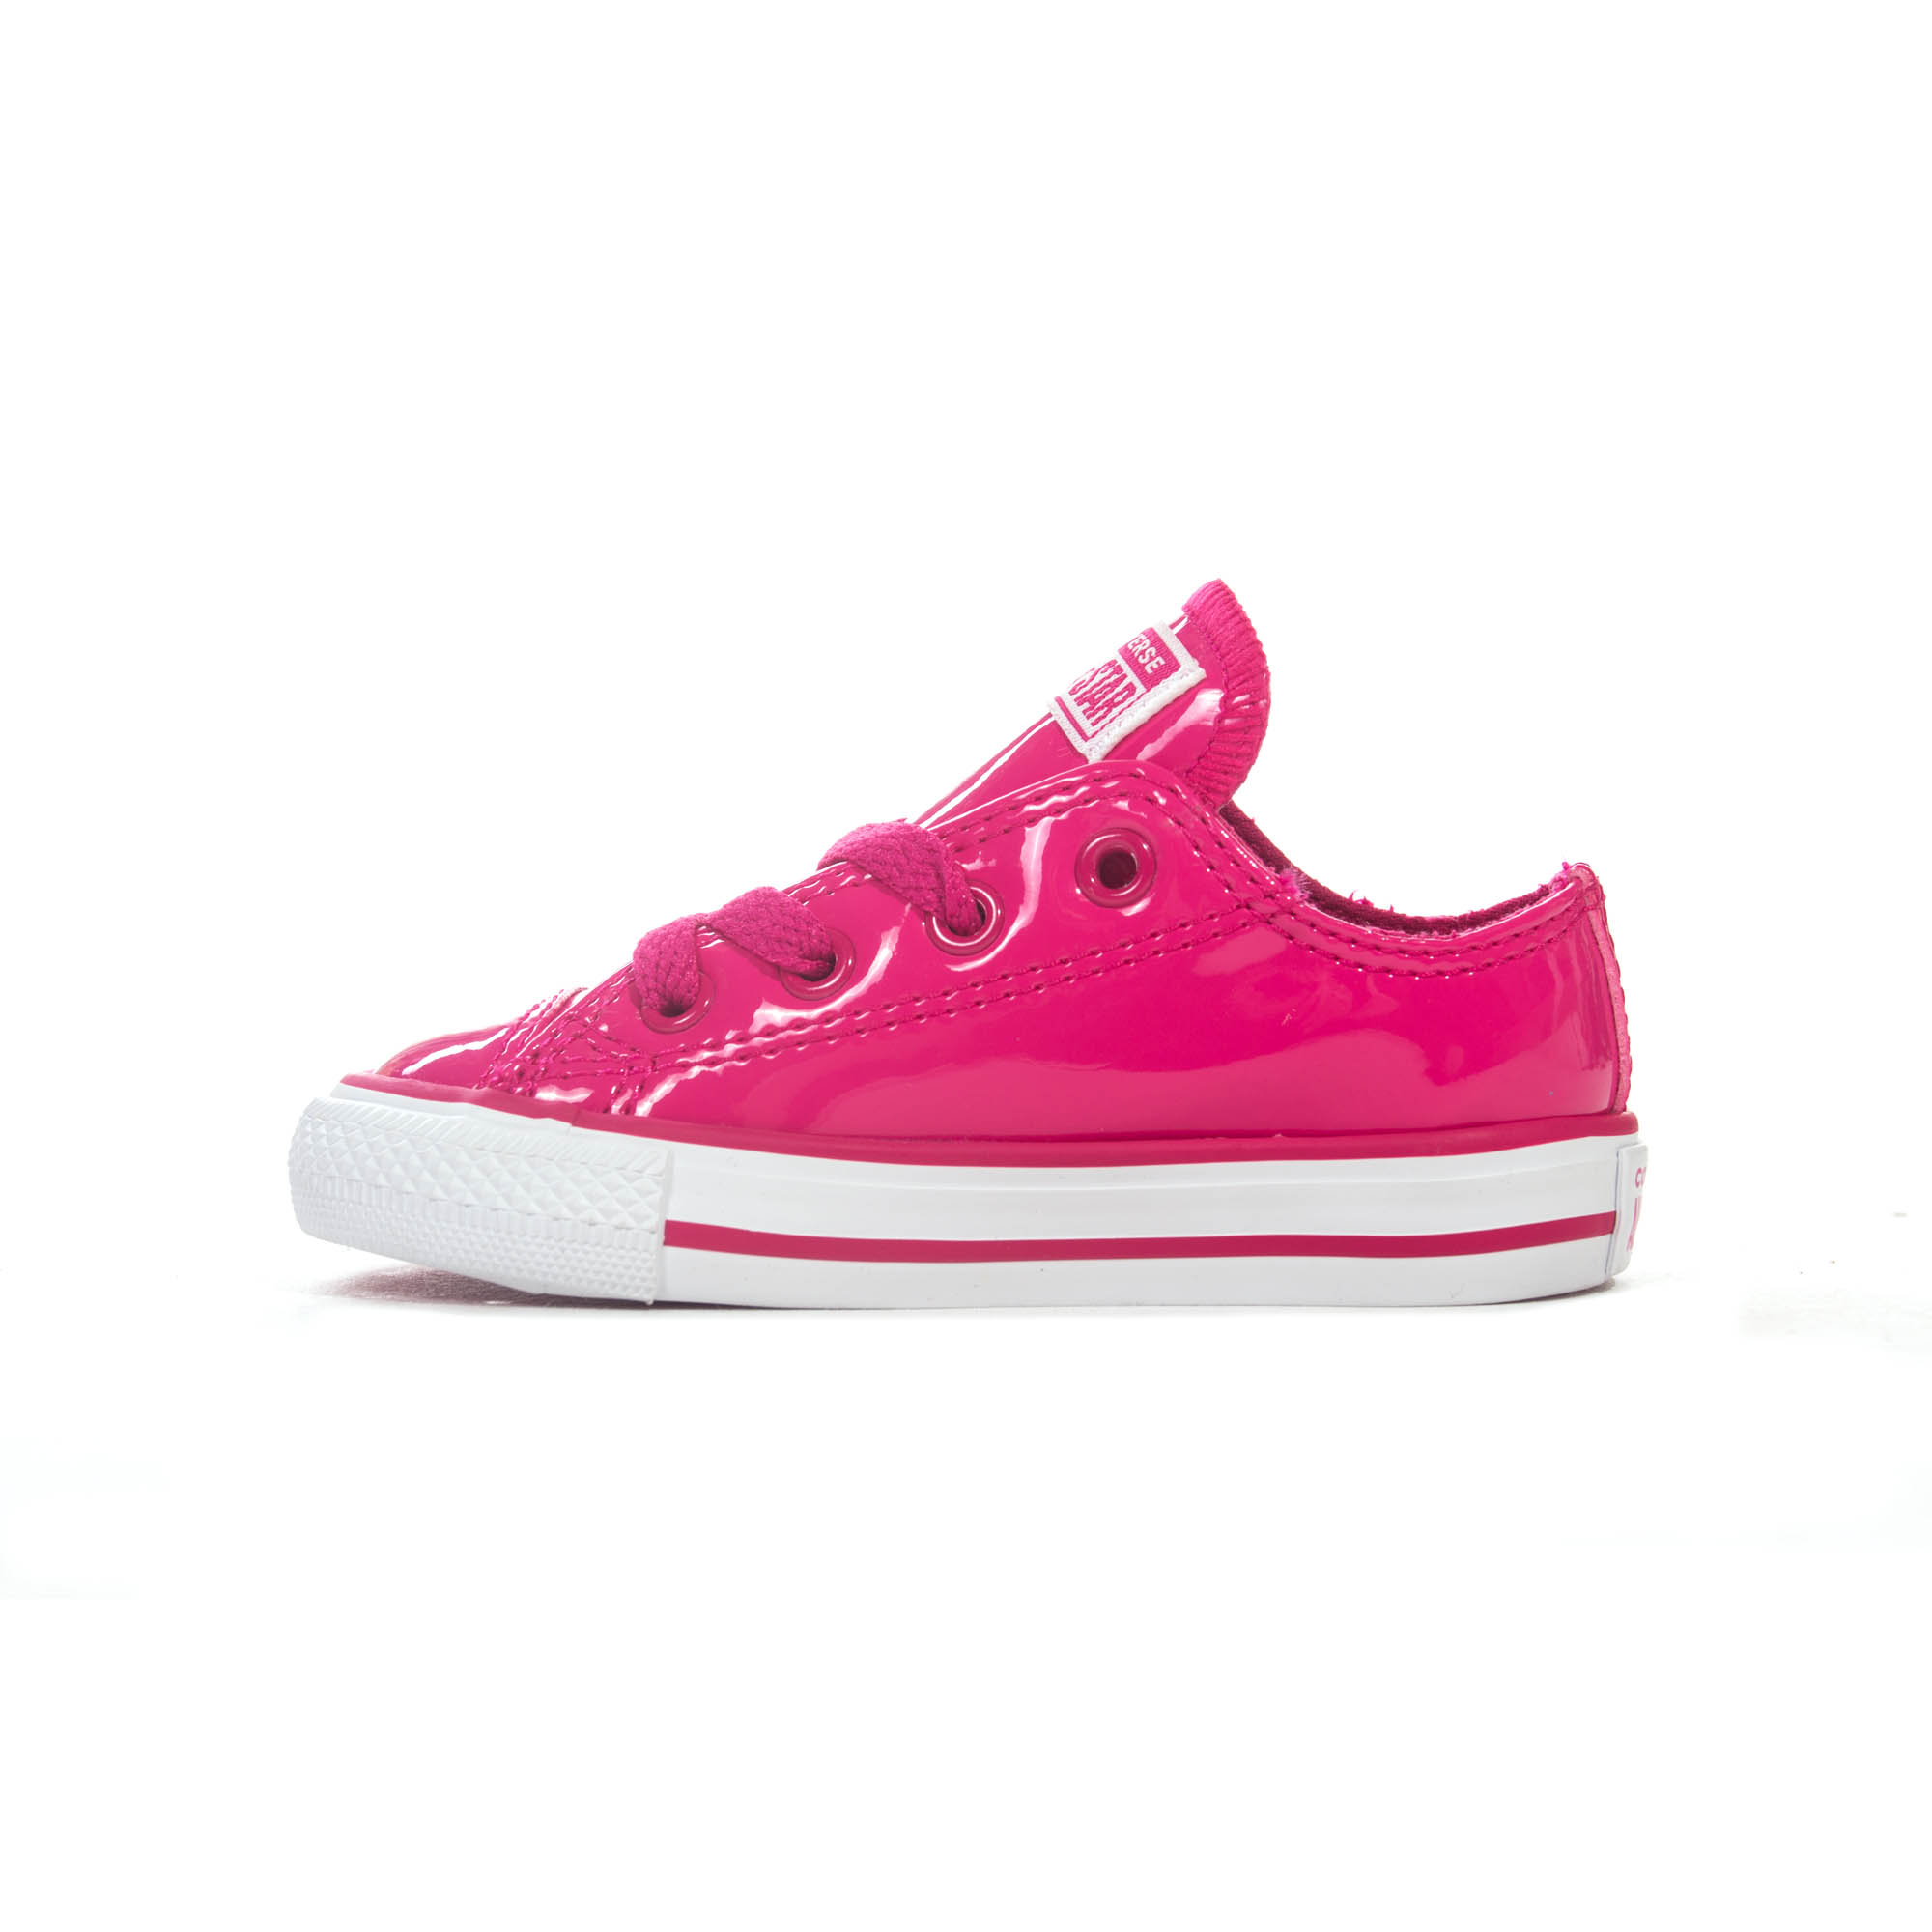 8340577d9f50 Converse Chuck Taylor All Star Ox Patent 90s Infant Girls Trainer Pink